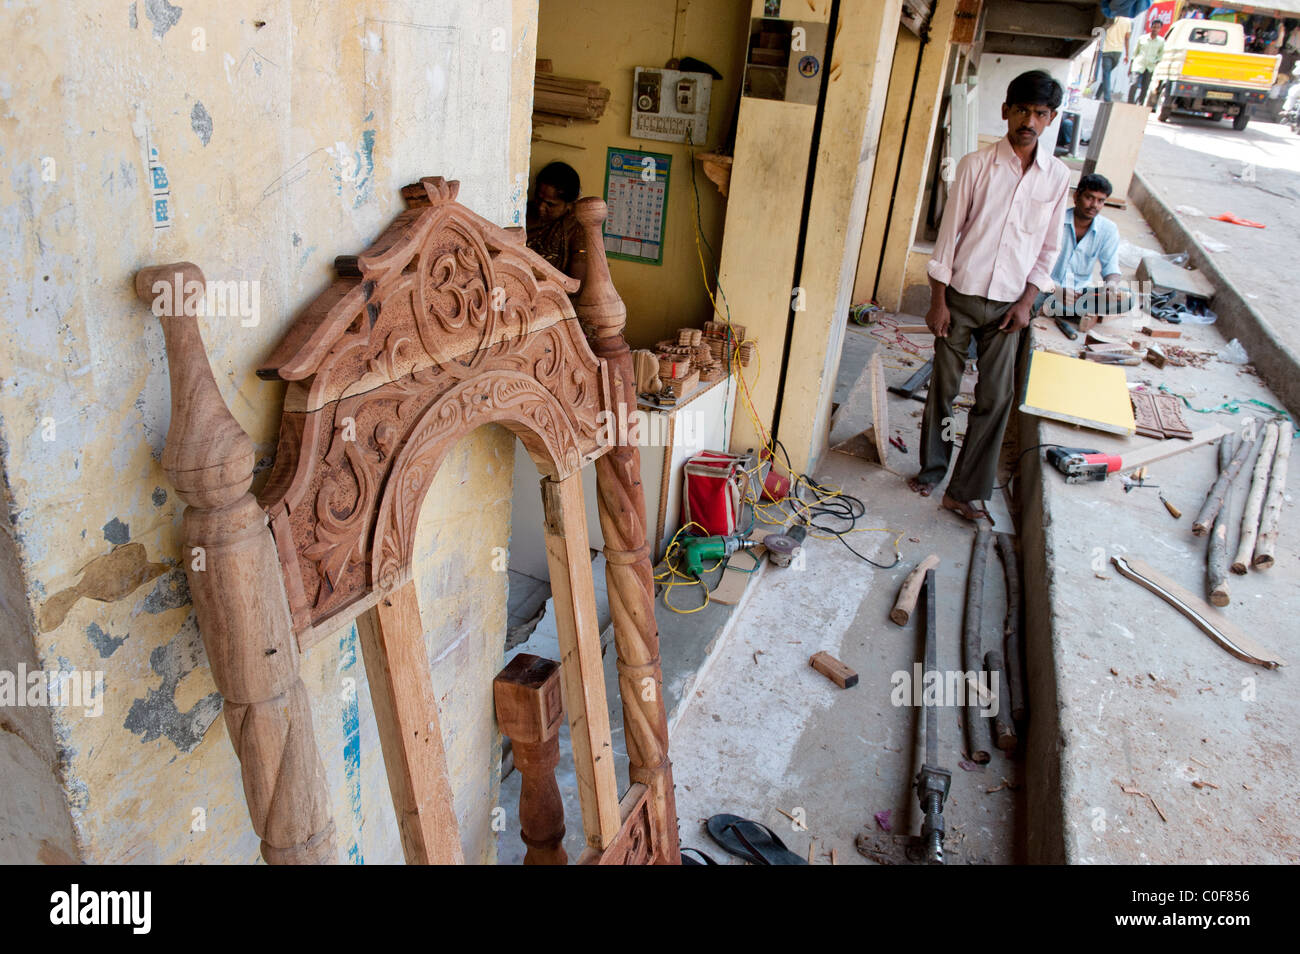 Indian wood working shop in Puttaparthi, Andhra Pradesh, India - Stock Image